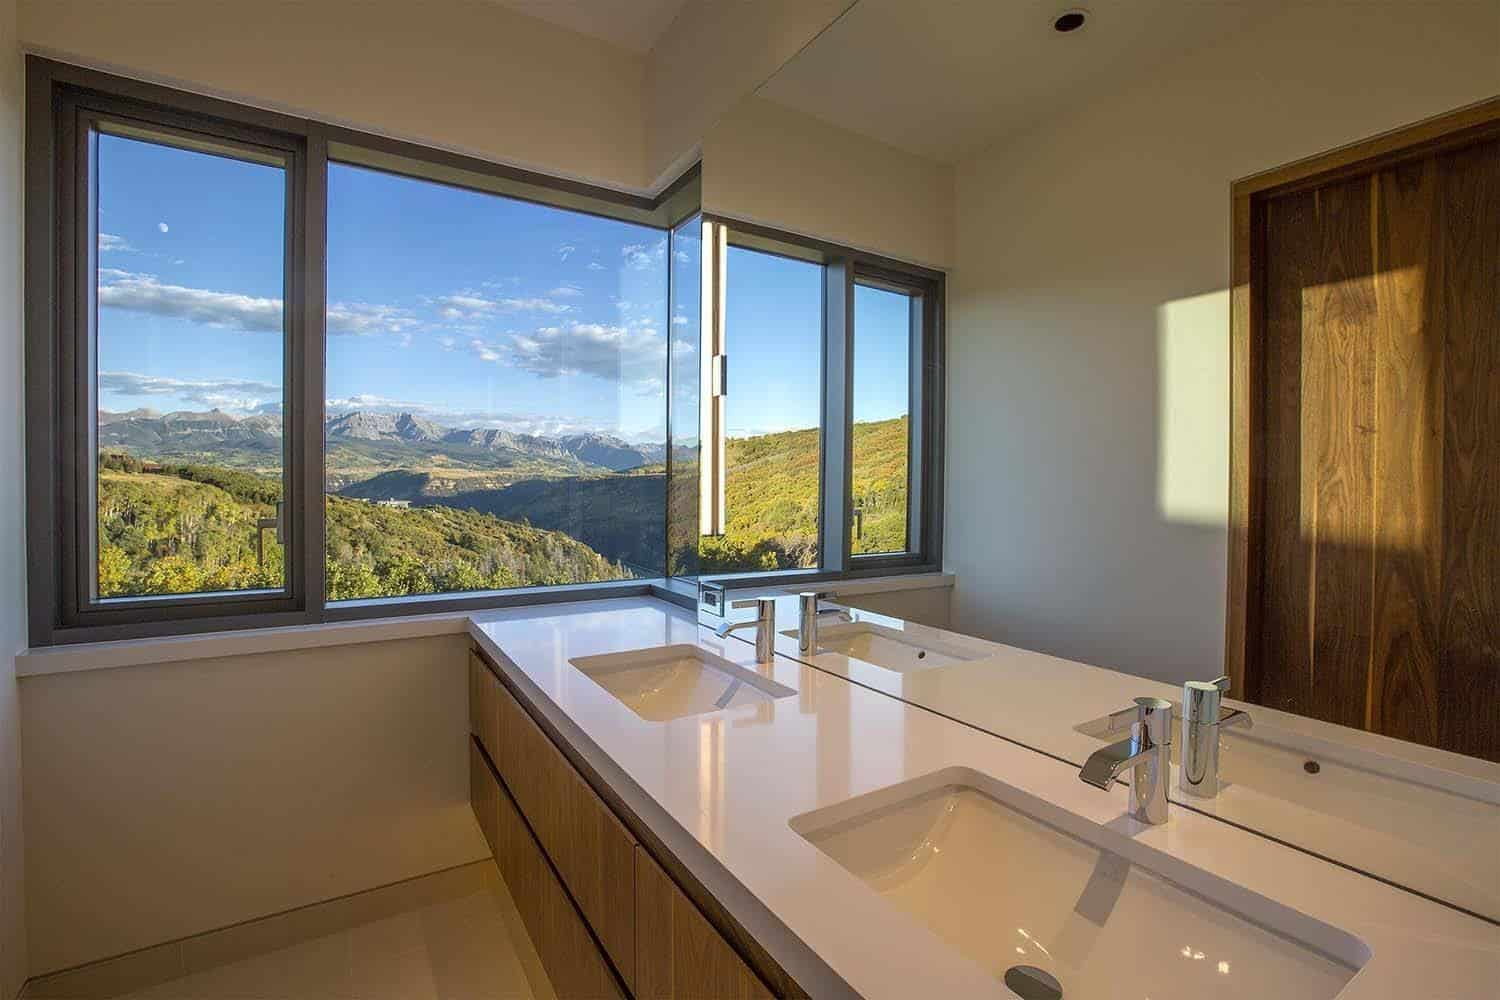 Modern-Residence-Colorado-Poss Architecture-58-1 Kindesign